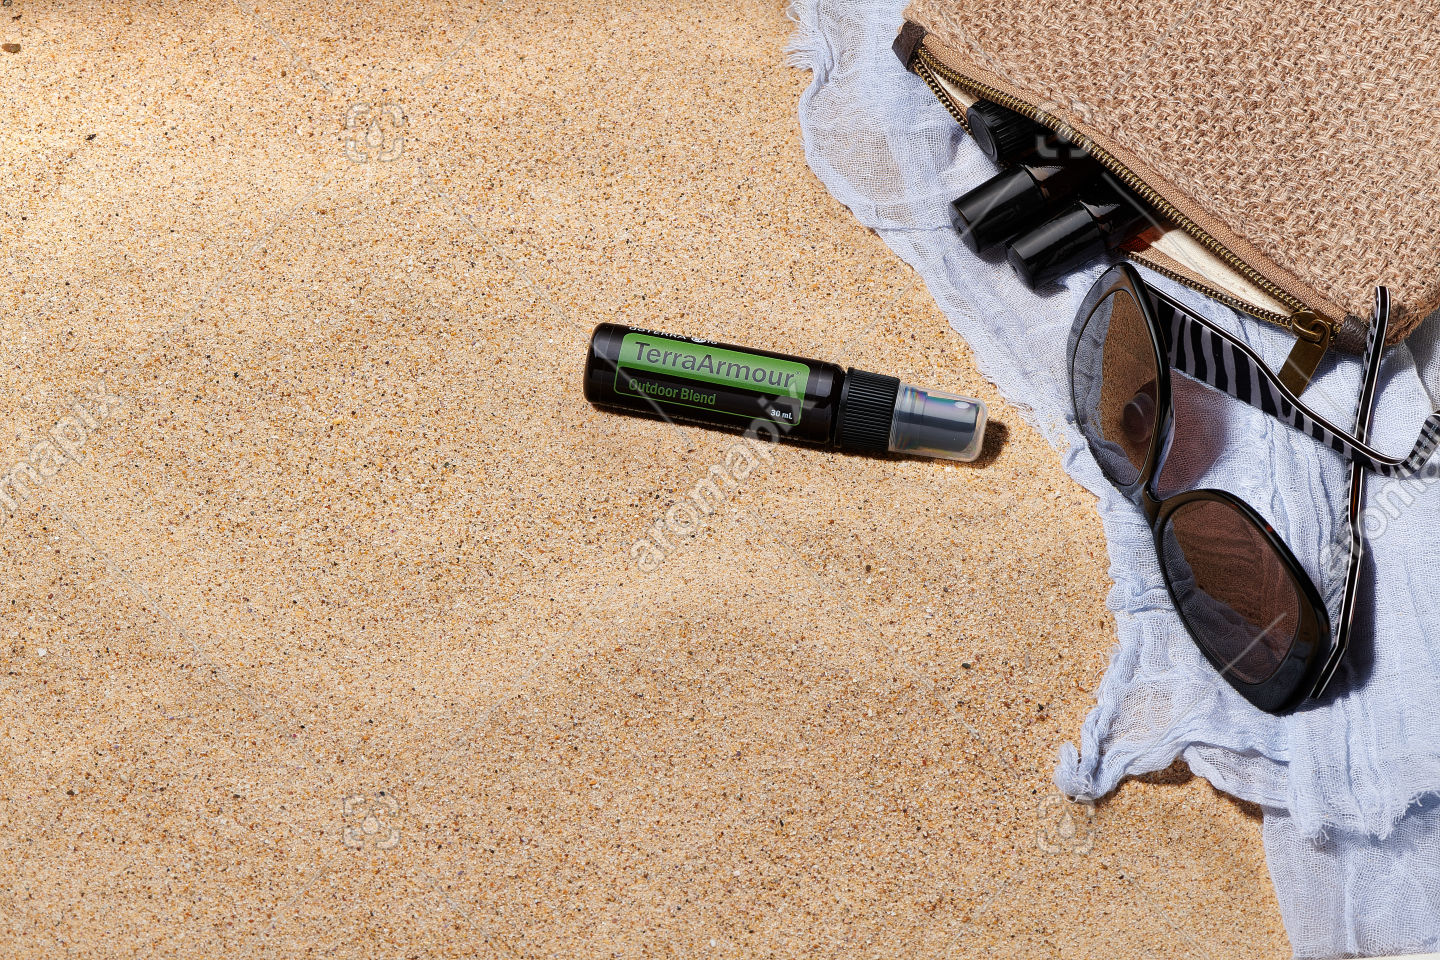 doTERRA TerraArmour spray with accessories on sand